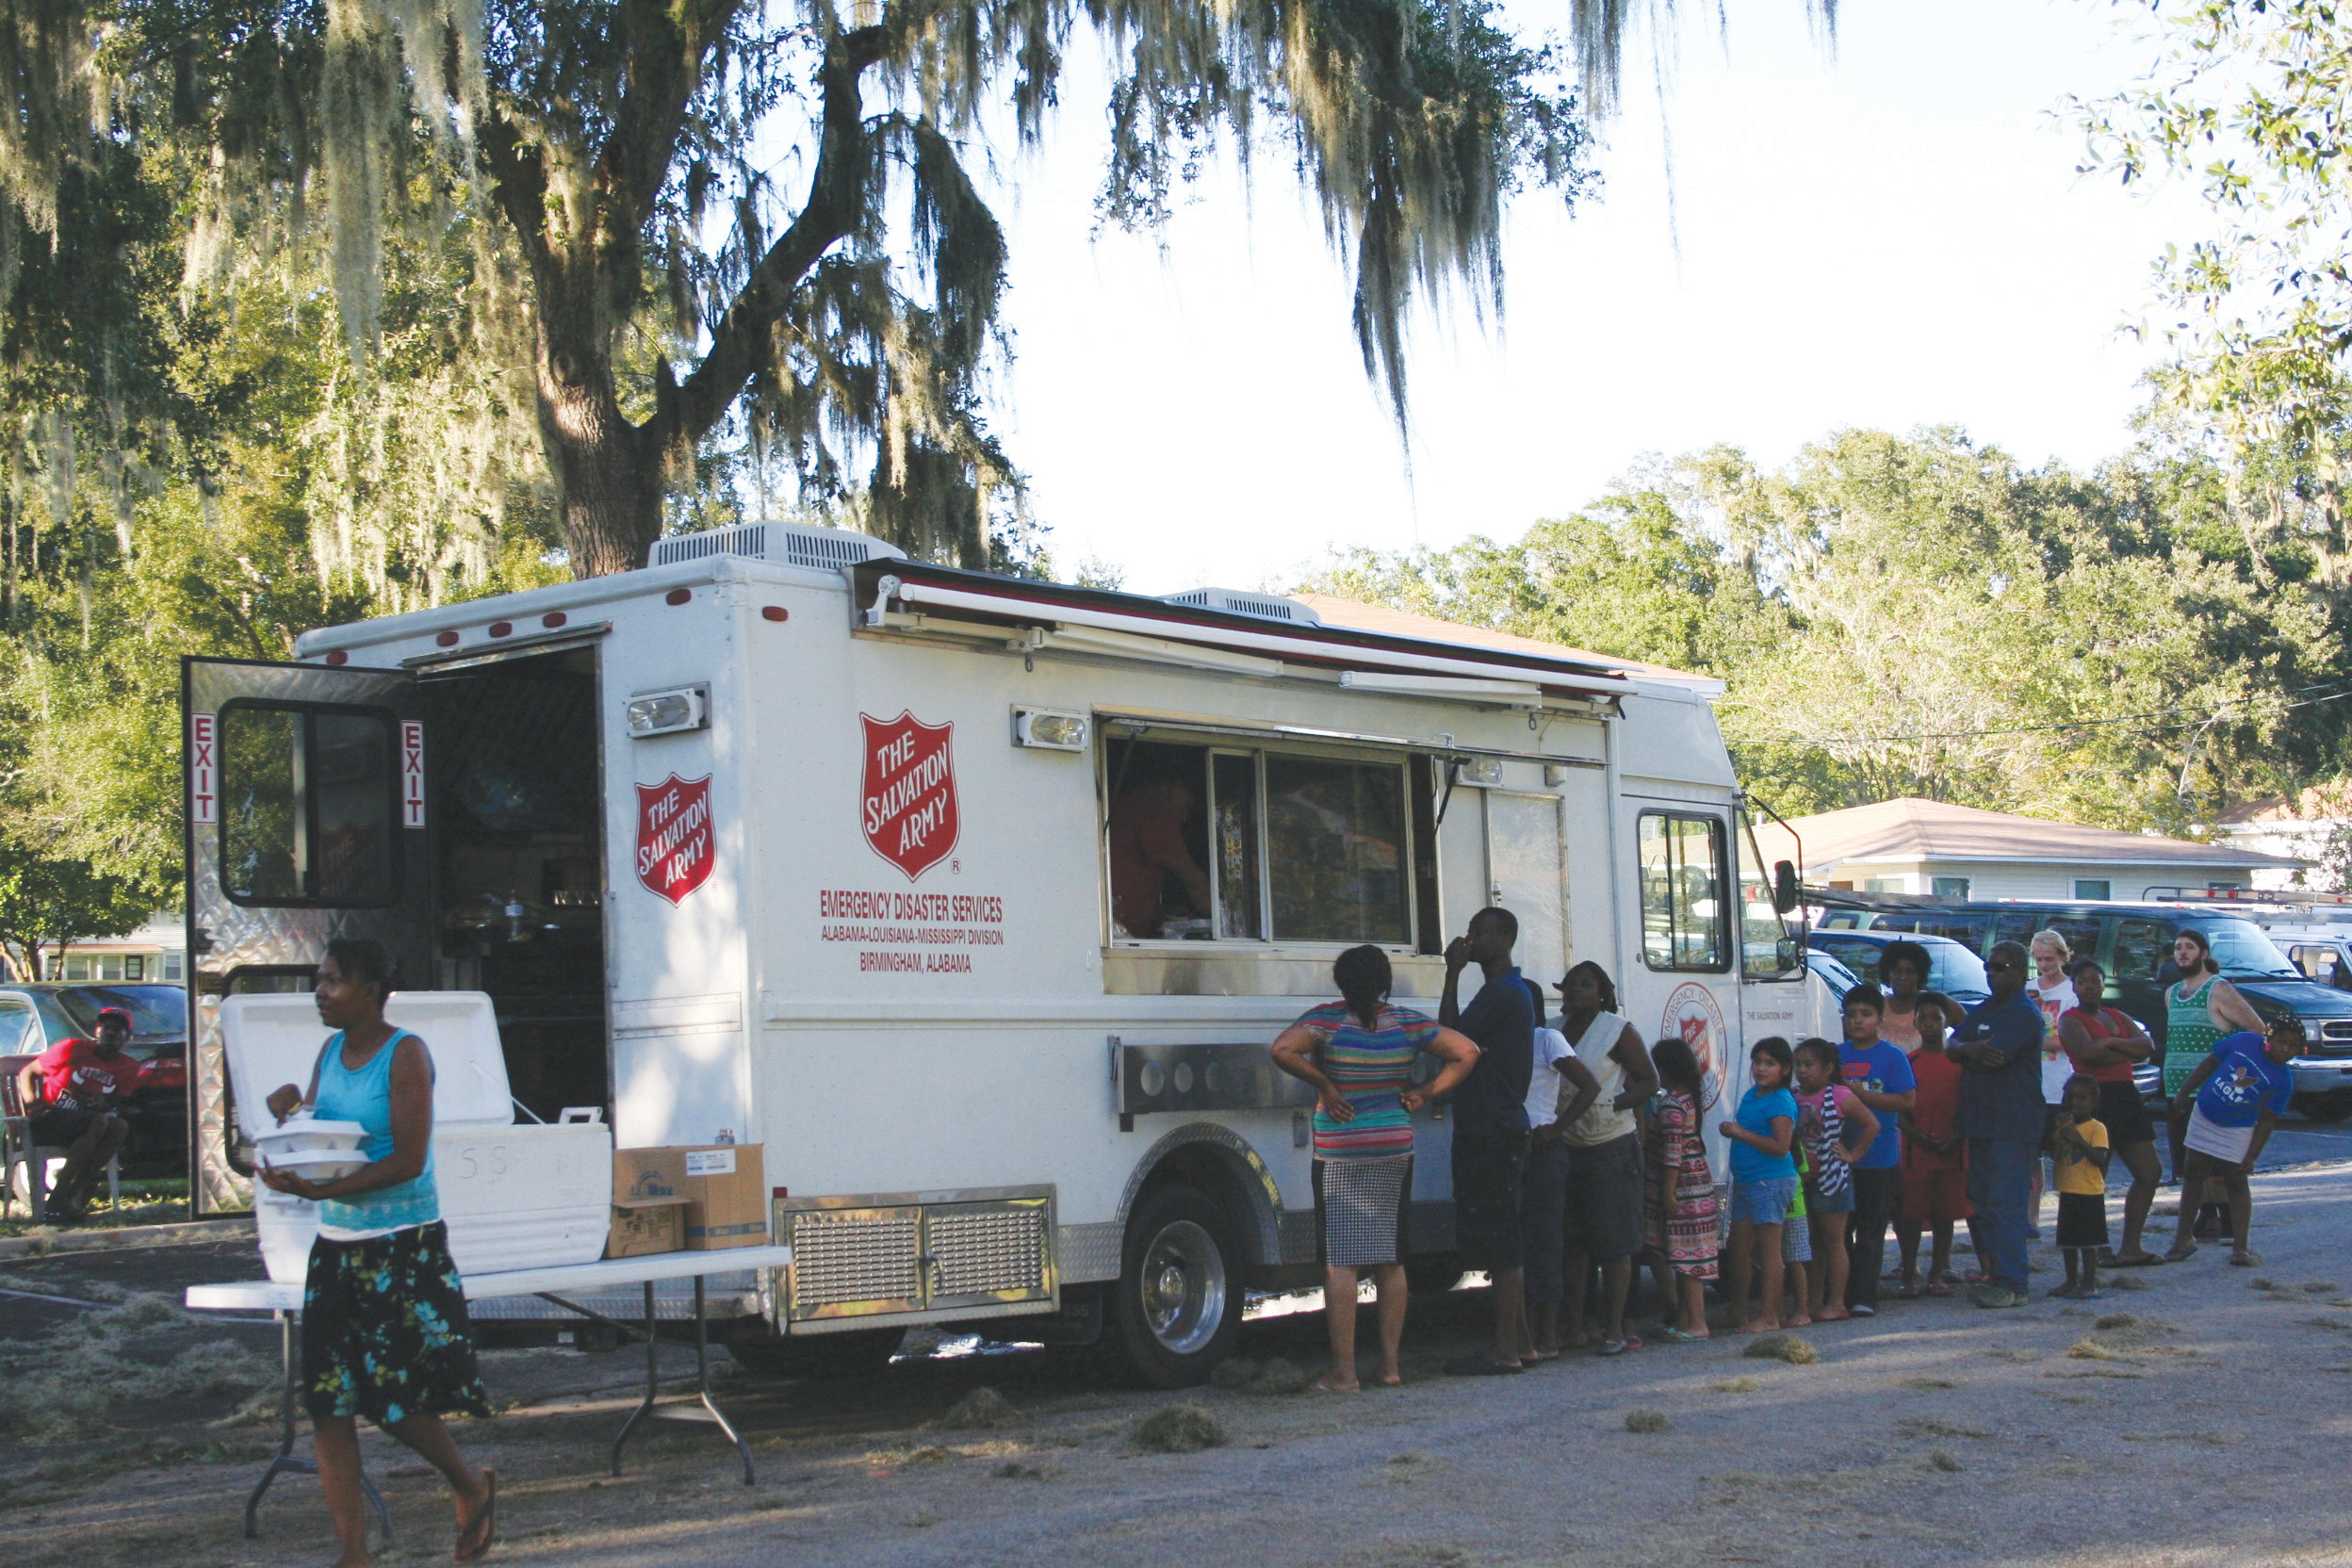 Residents of Green Cove Springs were treated to hot meals Oct. 8 by  a Salvation Army disaster services canteen that served 680 meals, 680 drinks and 680 snacks. Earlier that day, the canteen served 42 meals and 50 snacks at Meadow Brook near Orange Park. The food truck was one of eight sent to Florida for the storm.